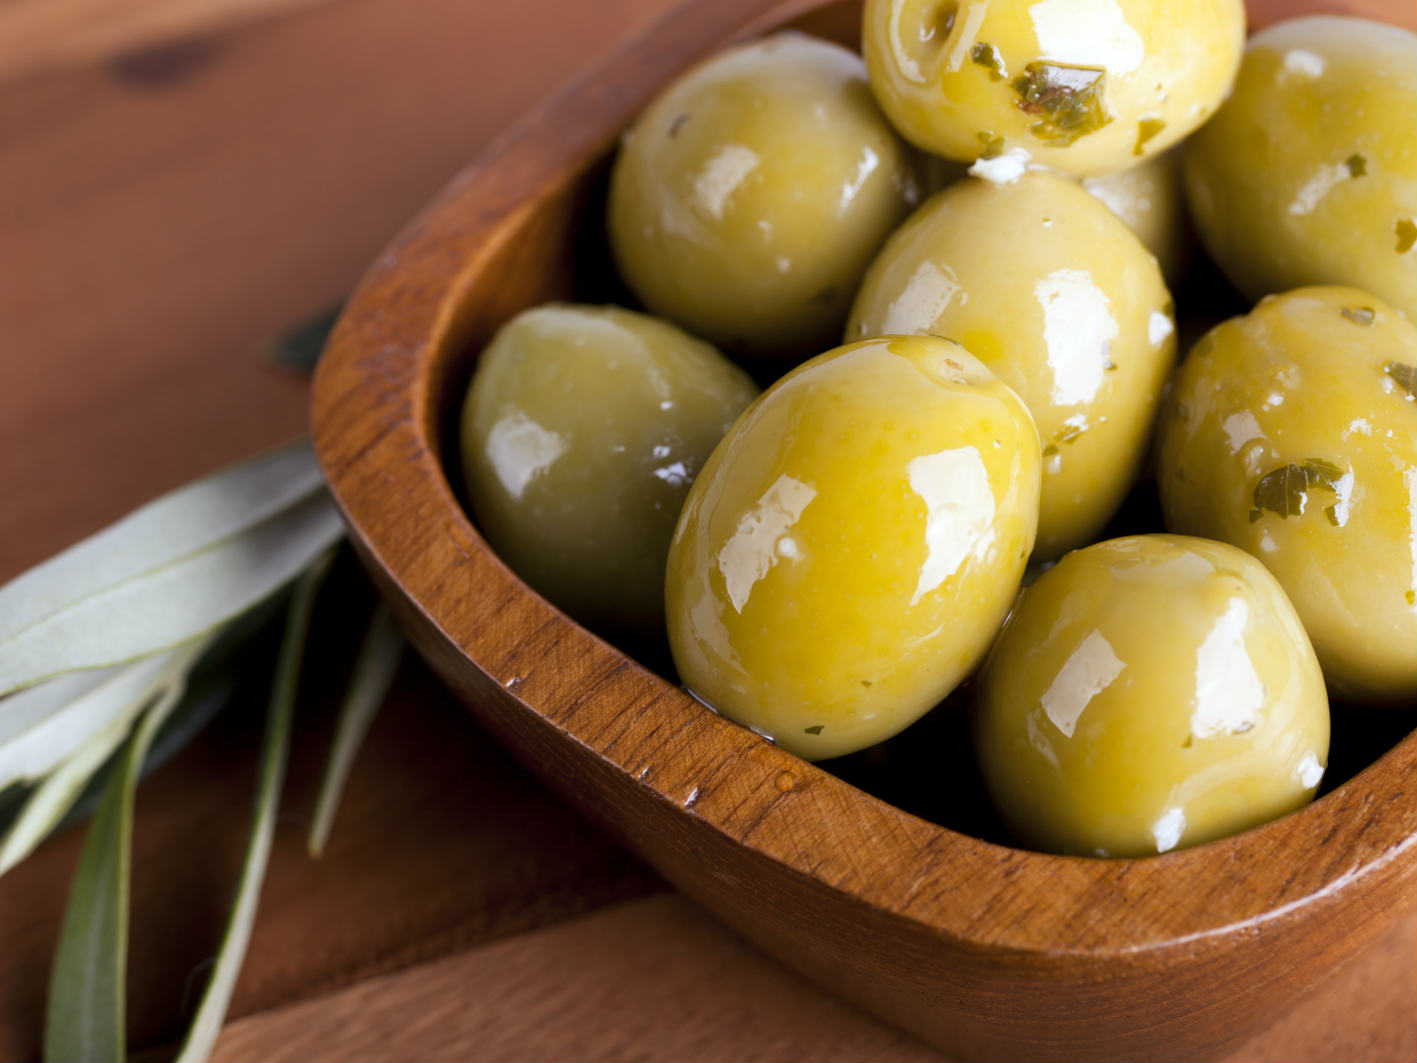 The Spanish olive arrives to the British market